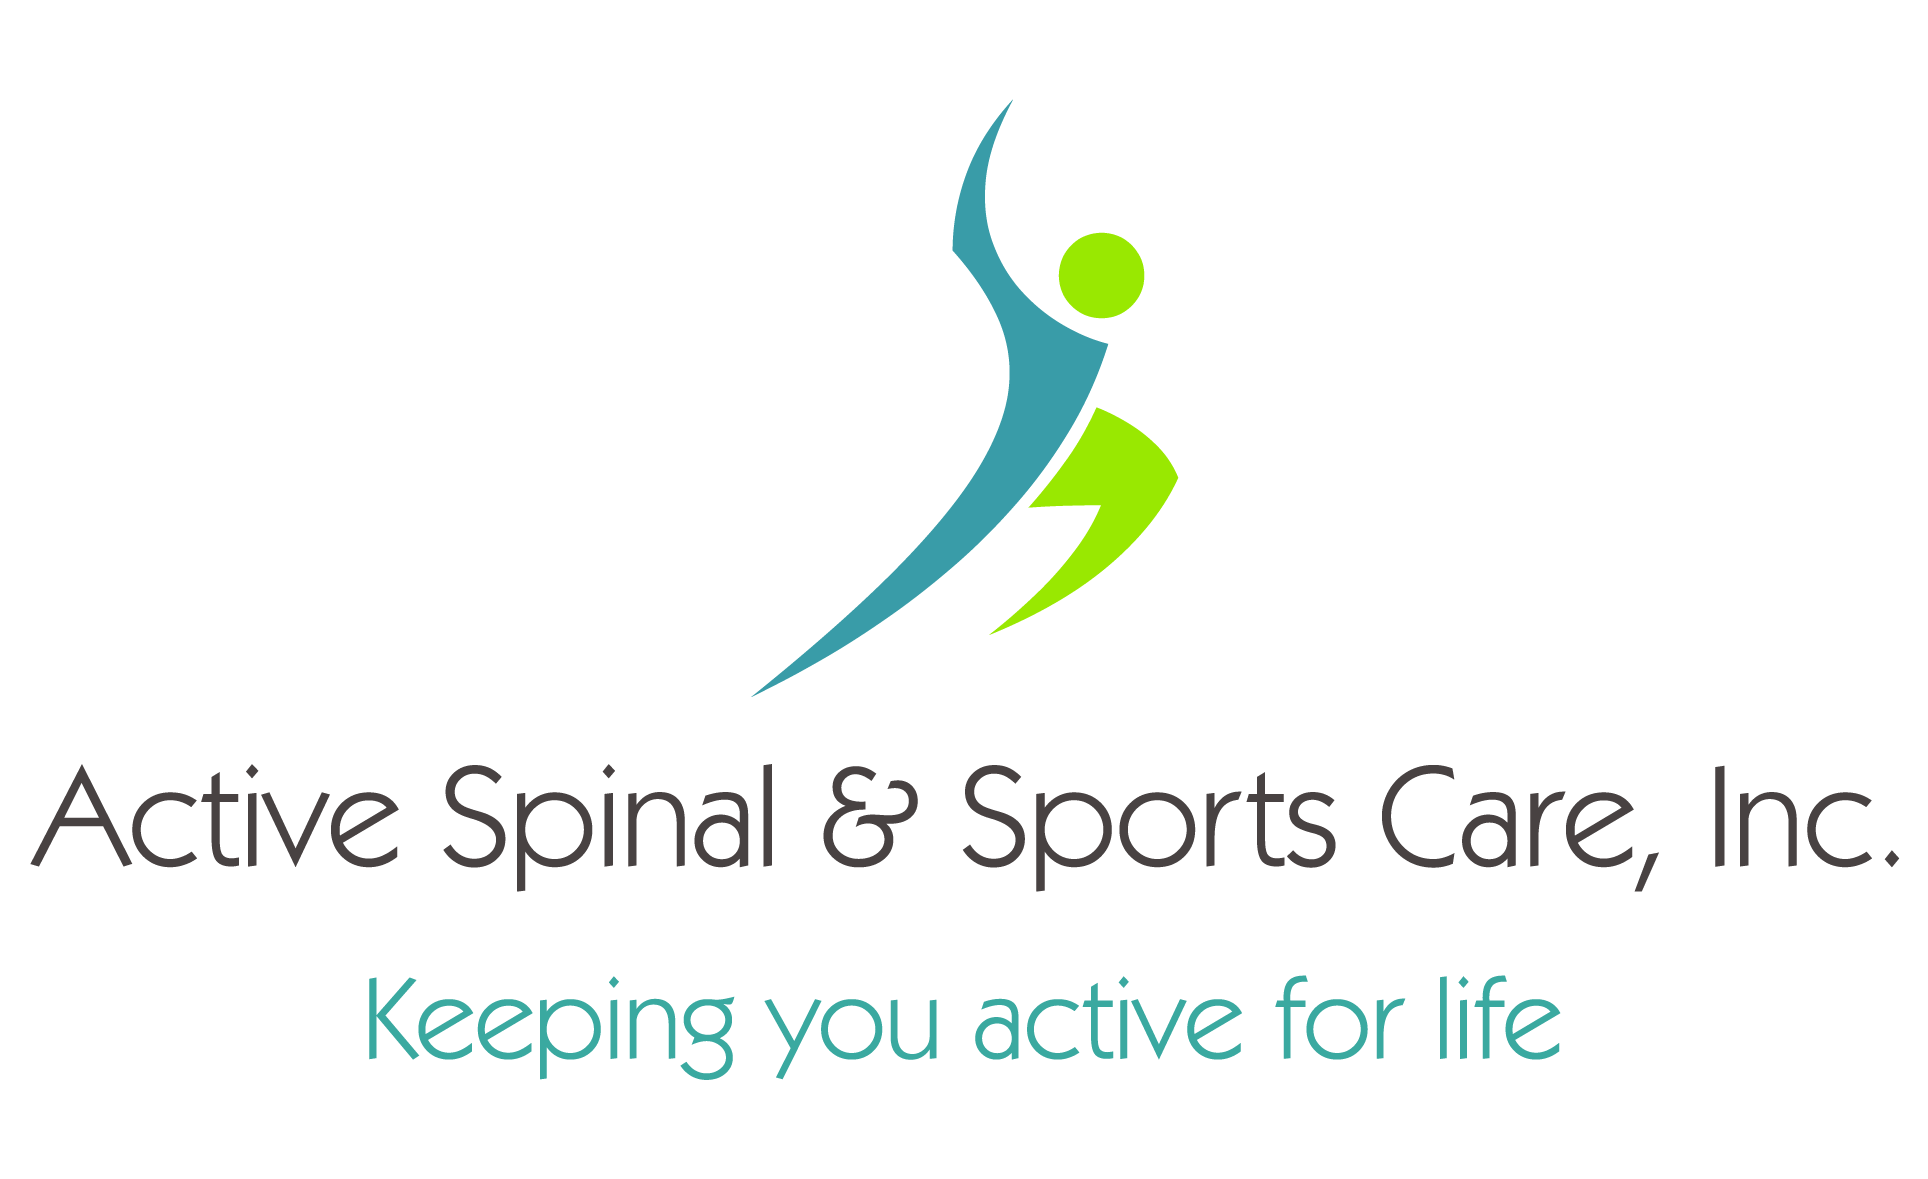 Active Spinal & Sports Care, Inc.